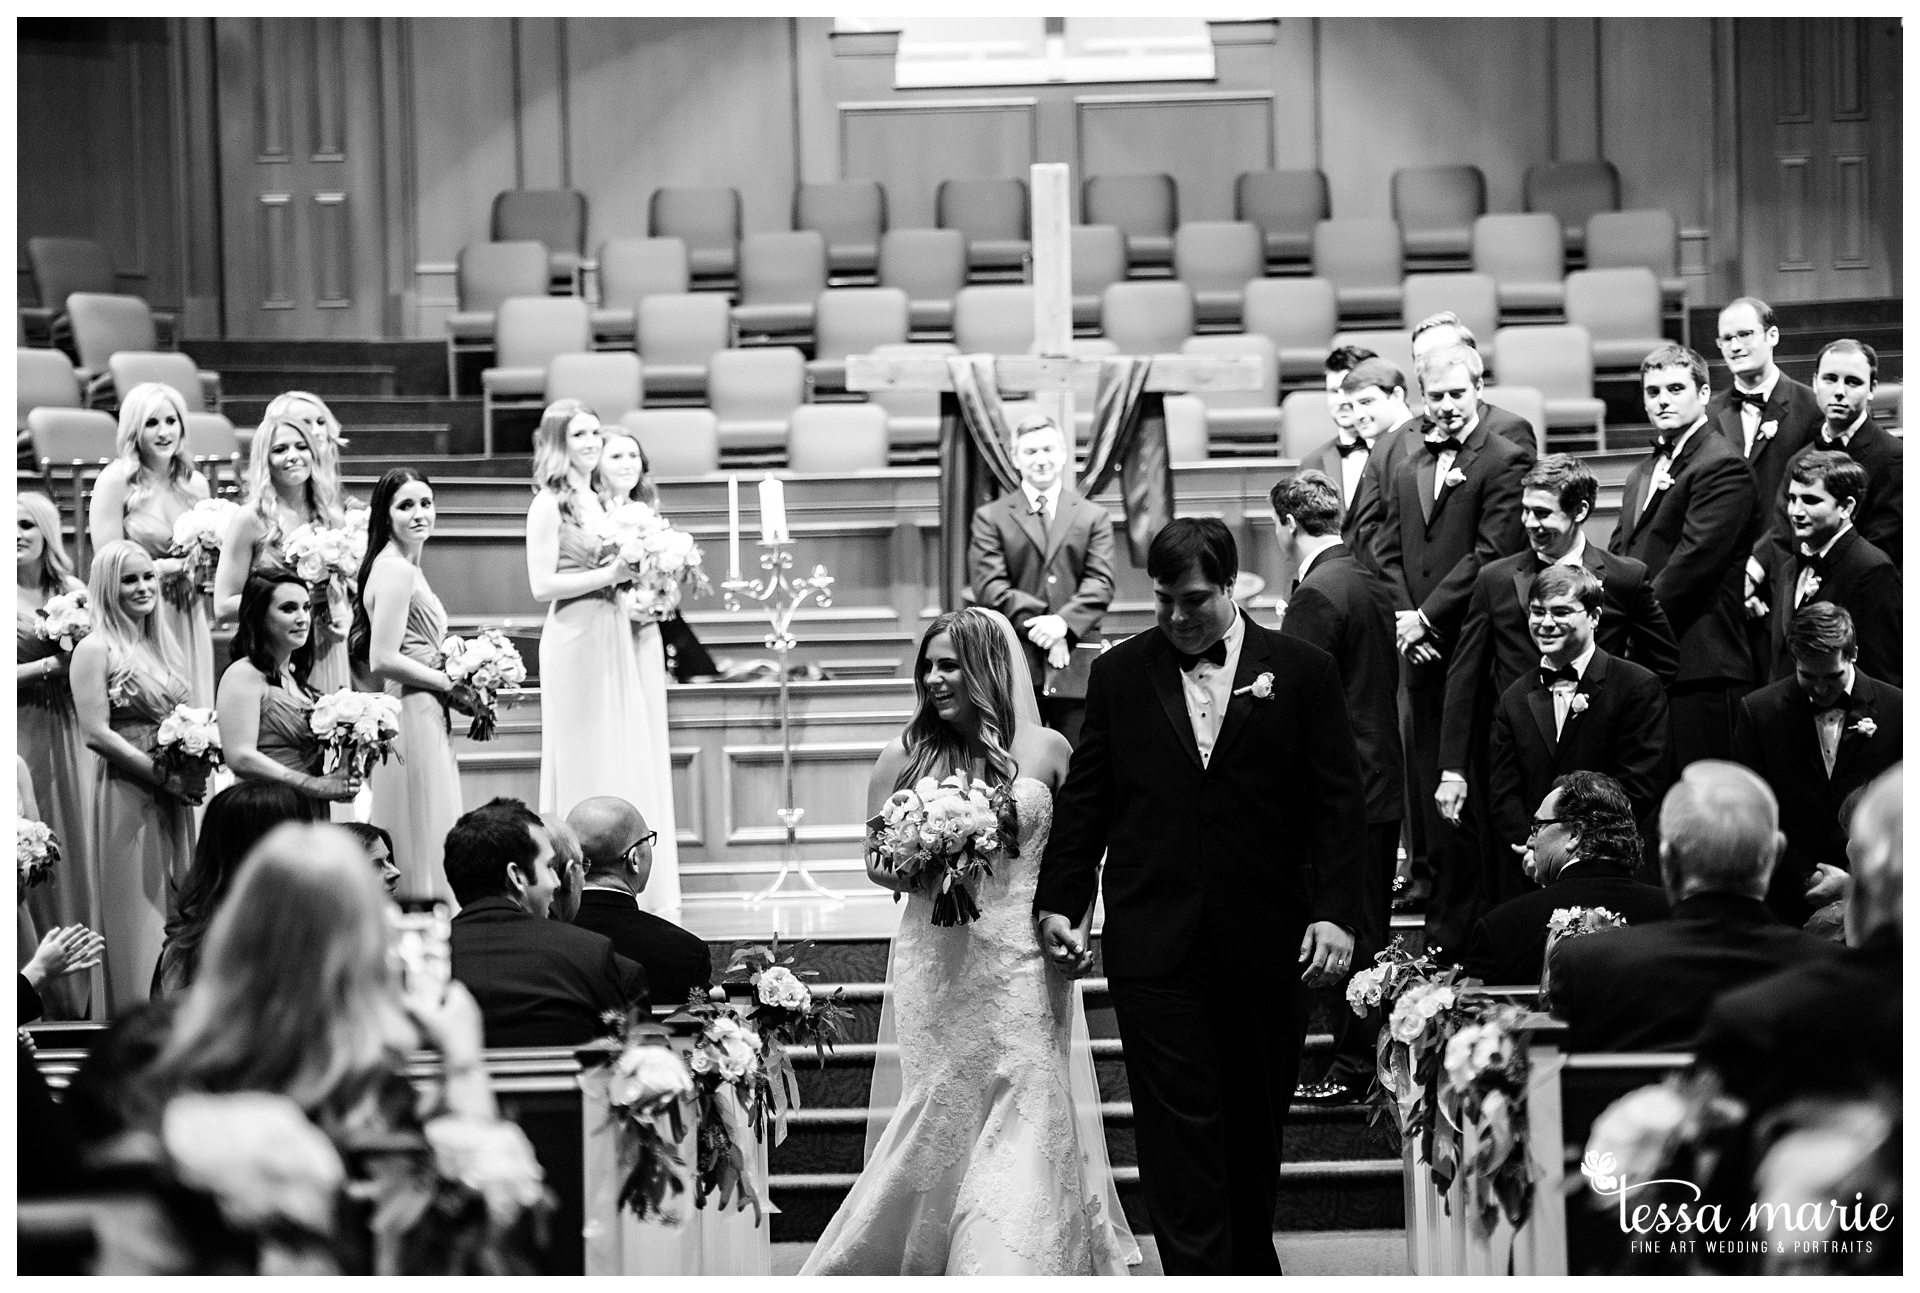 tessa_marie_weddings_legacy_story_focused_wedding_pictures_atlanta_wedding_photographer_0116